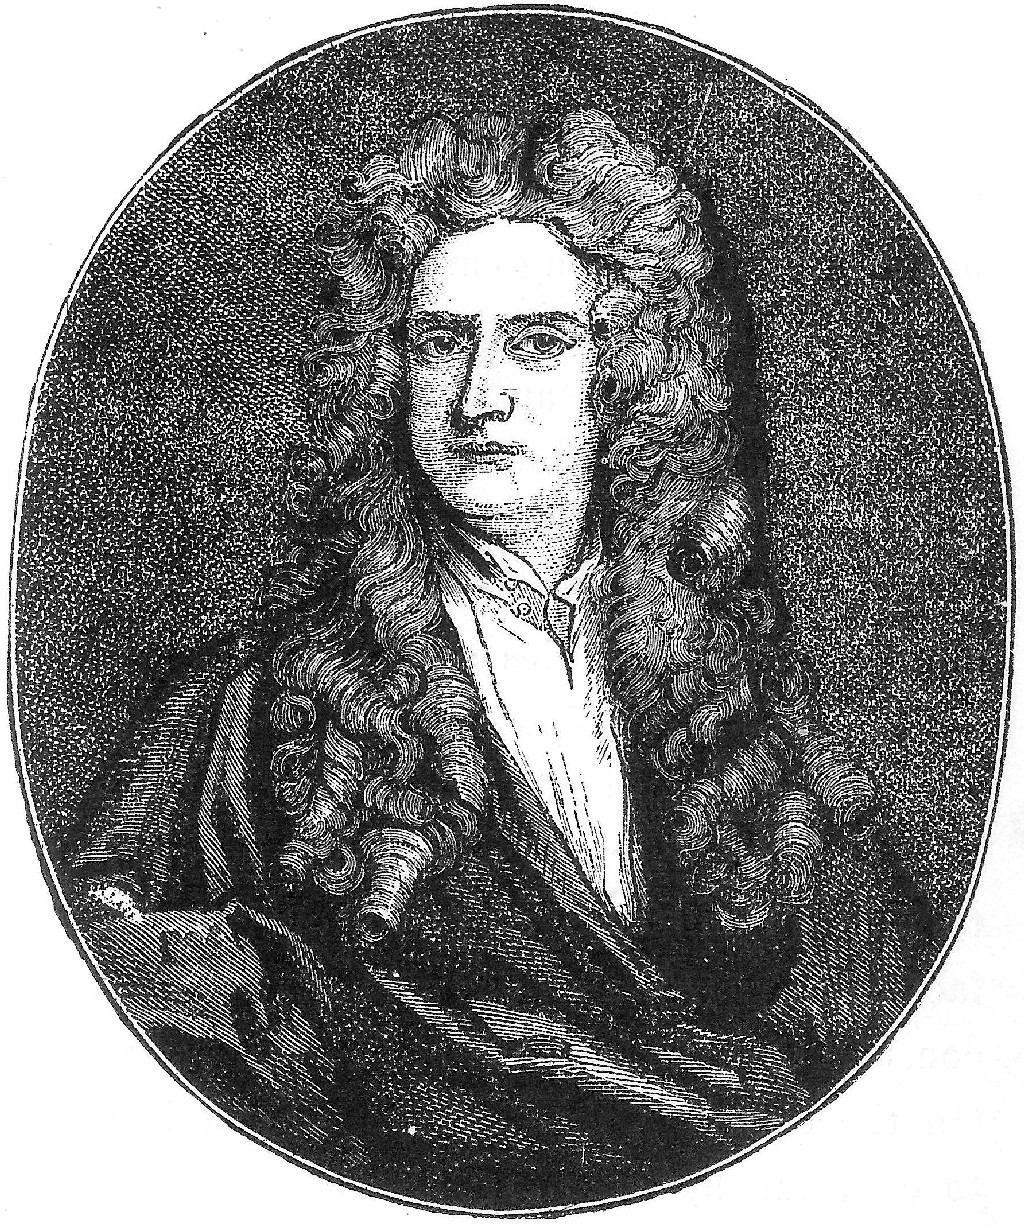 the life and contributions of isaac newton to mathematics and science Sir isaac newton (1642-1727) was one of the world's most famous and influential thinkers he founded the fields of classical mechanics, optics and calculus, among other contributions to algebra and thermodynamics.